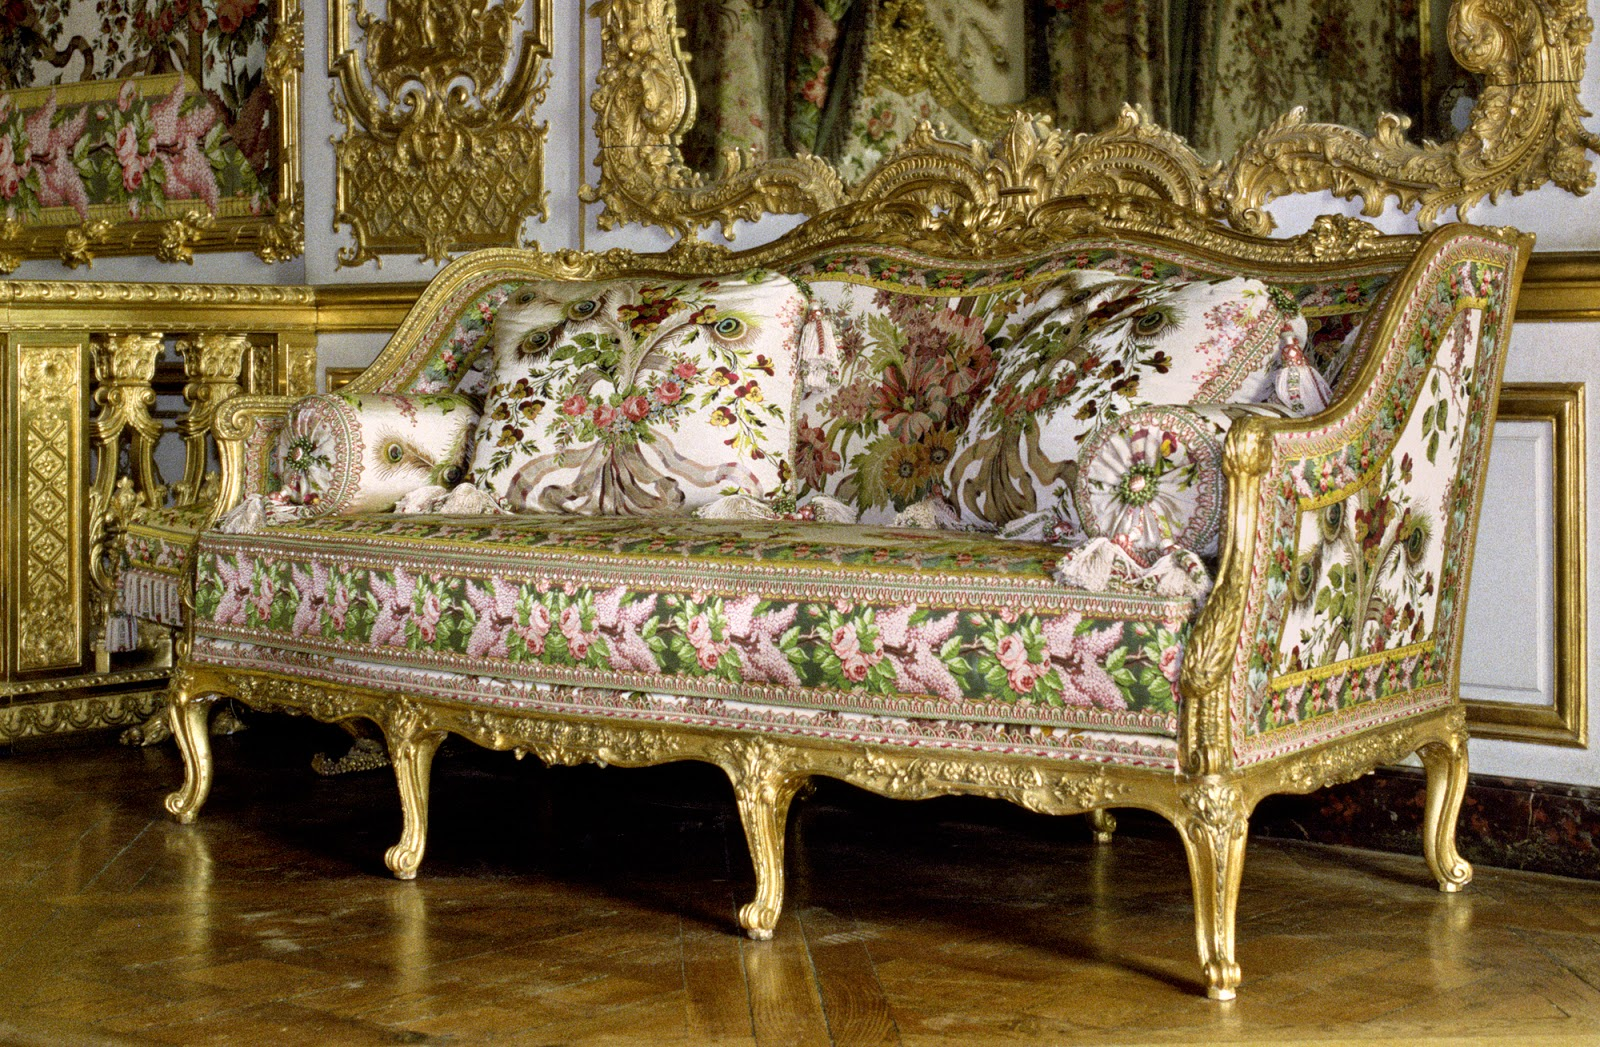 art et techniques de la dorure versailles canap foliot chambre de la reine. Black Bedroom Furniture Sets. Home Design Ideas